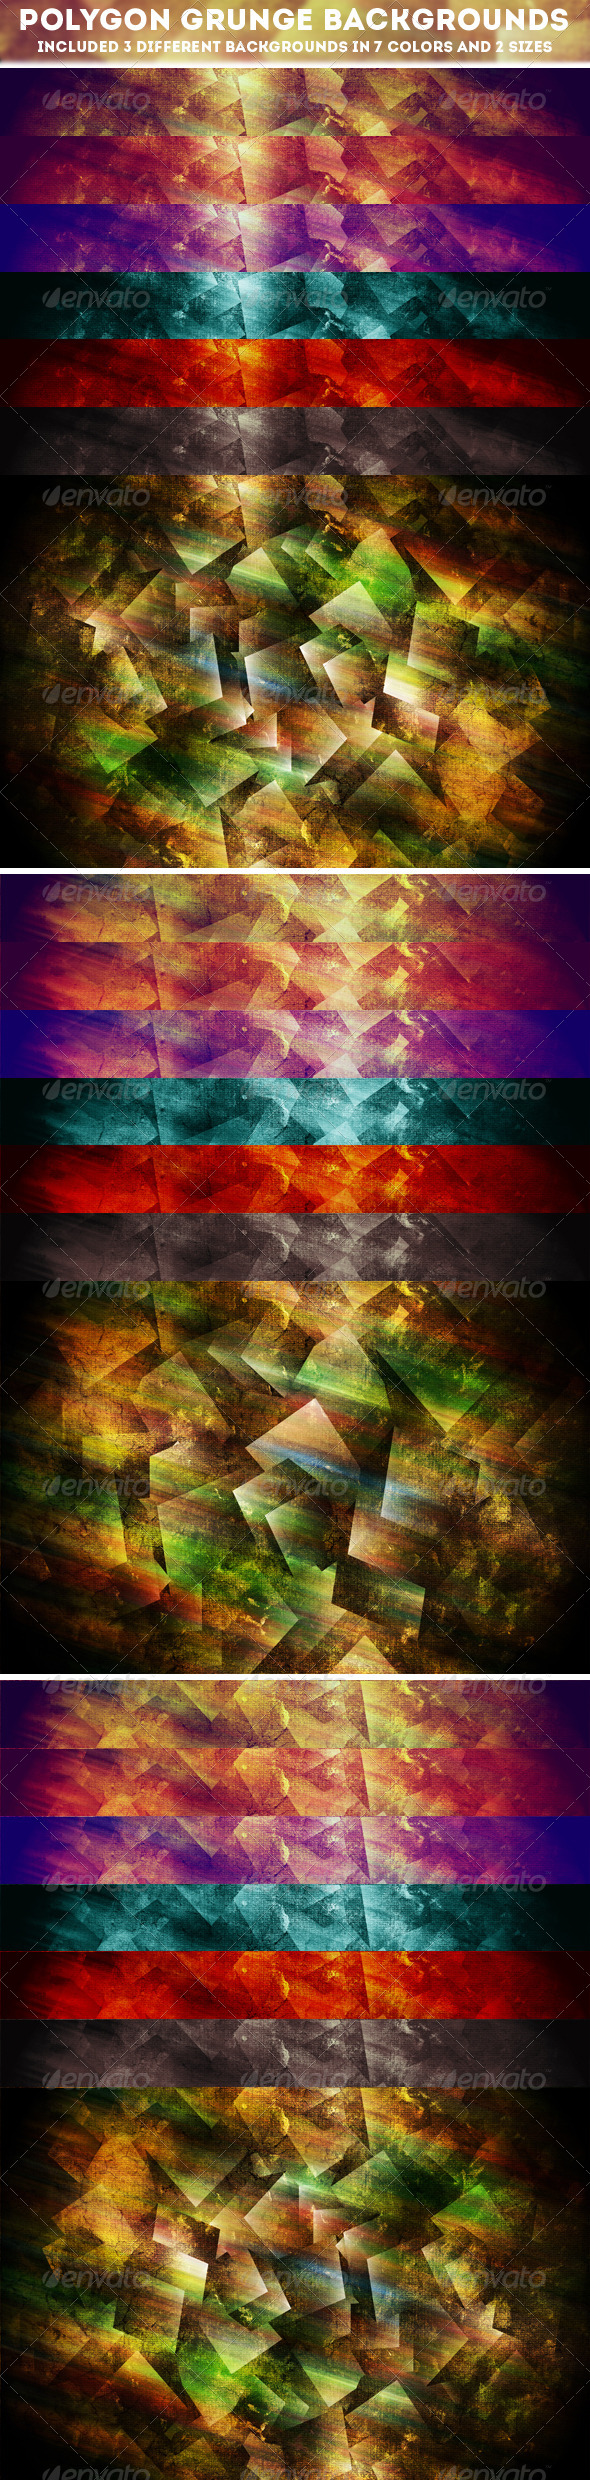 GraphicRiver Polygon Grunge Backgrounds 5253956